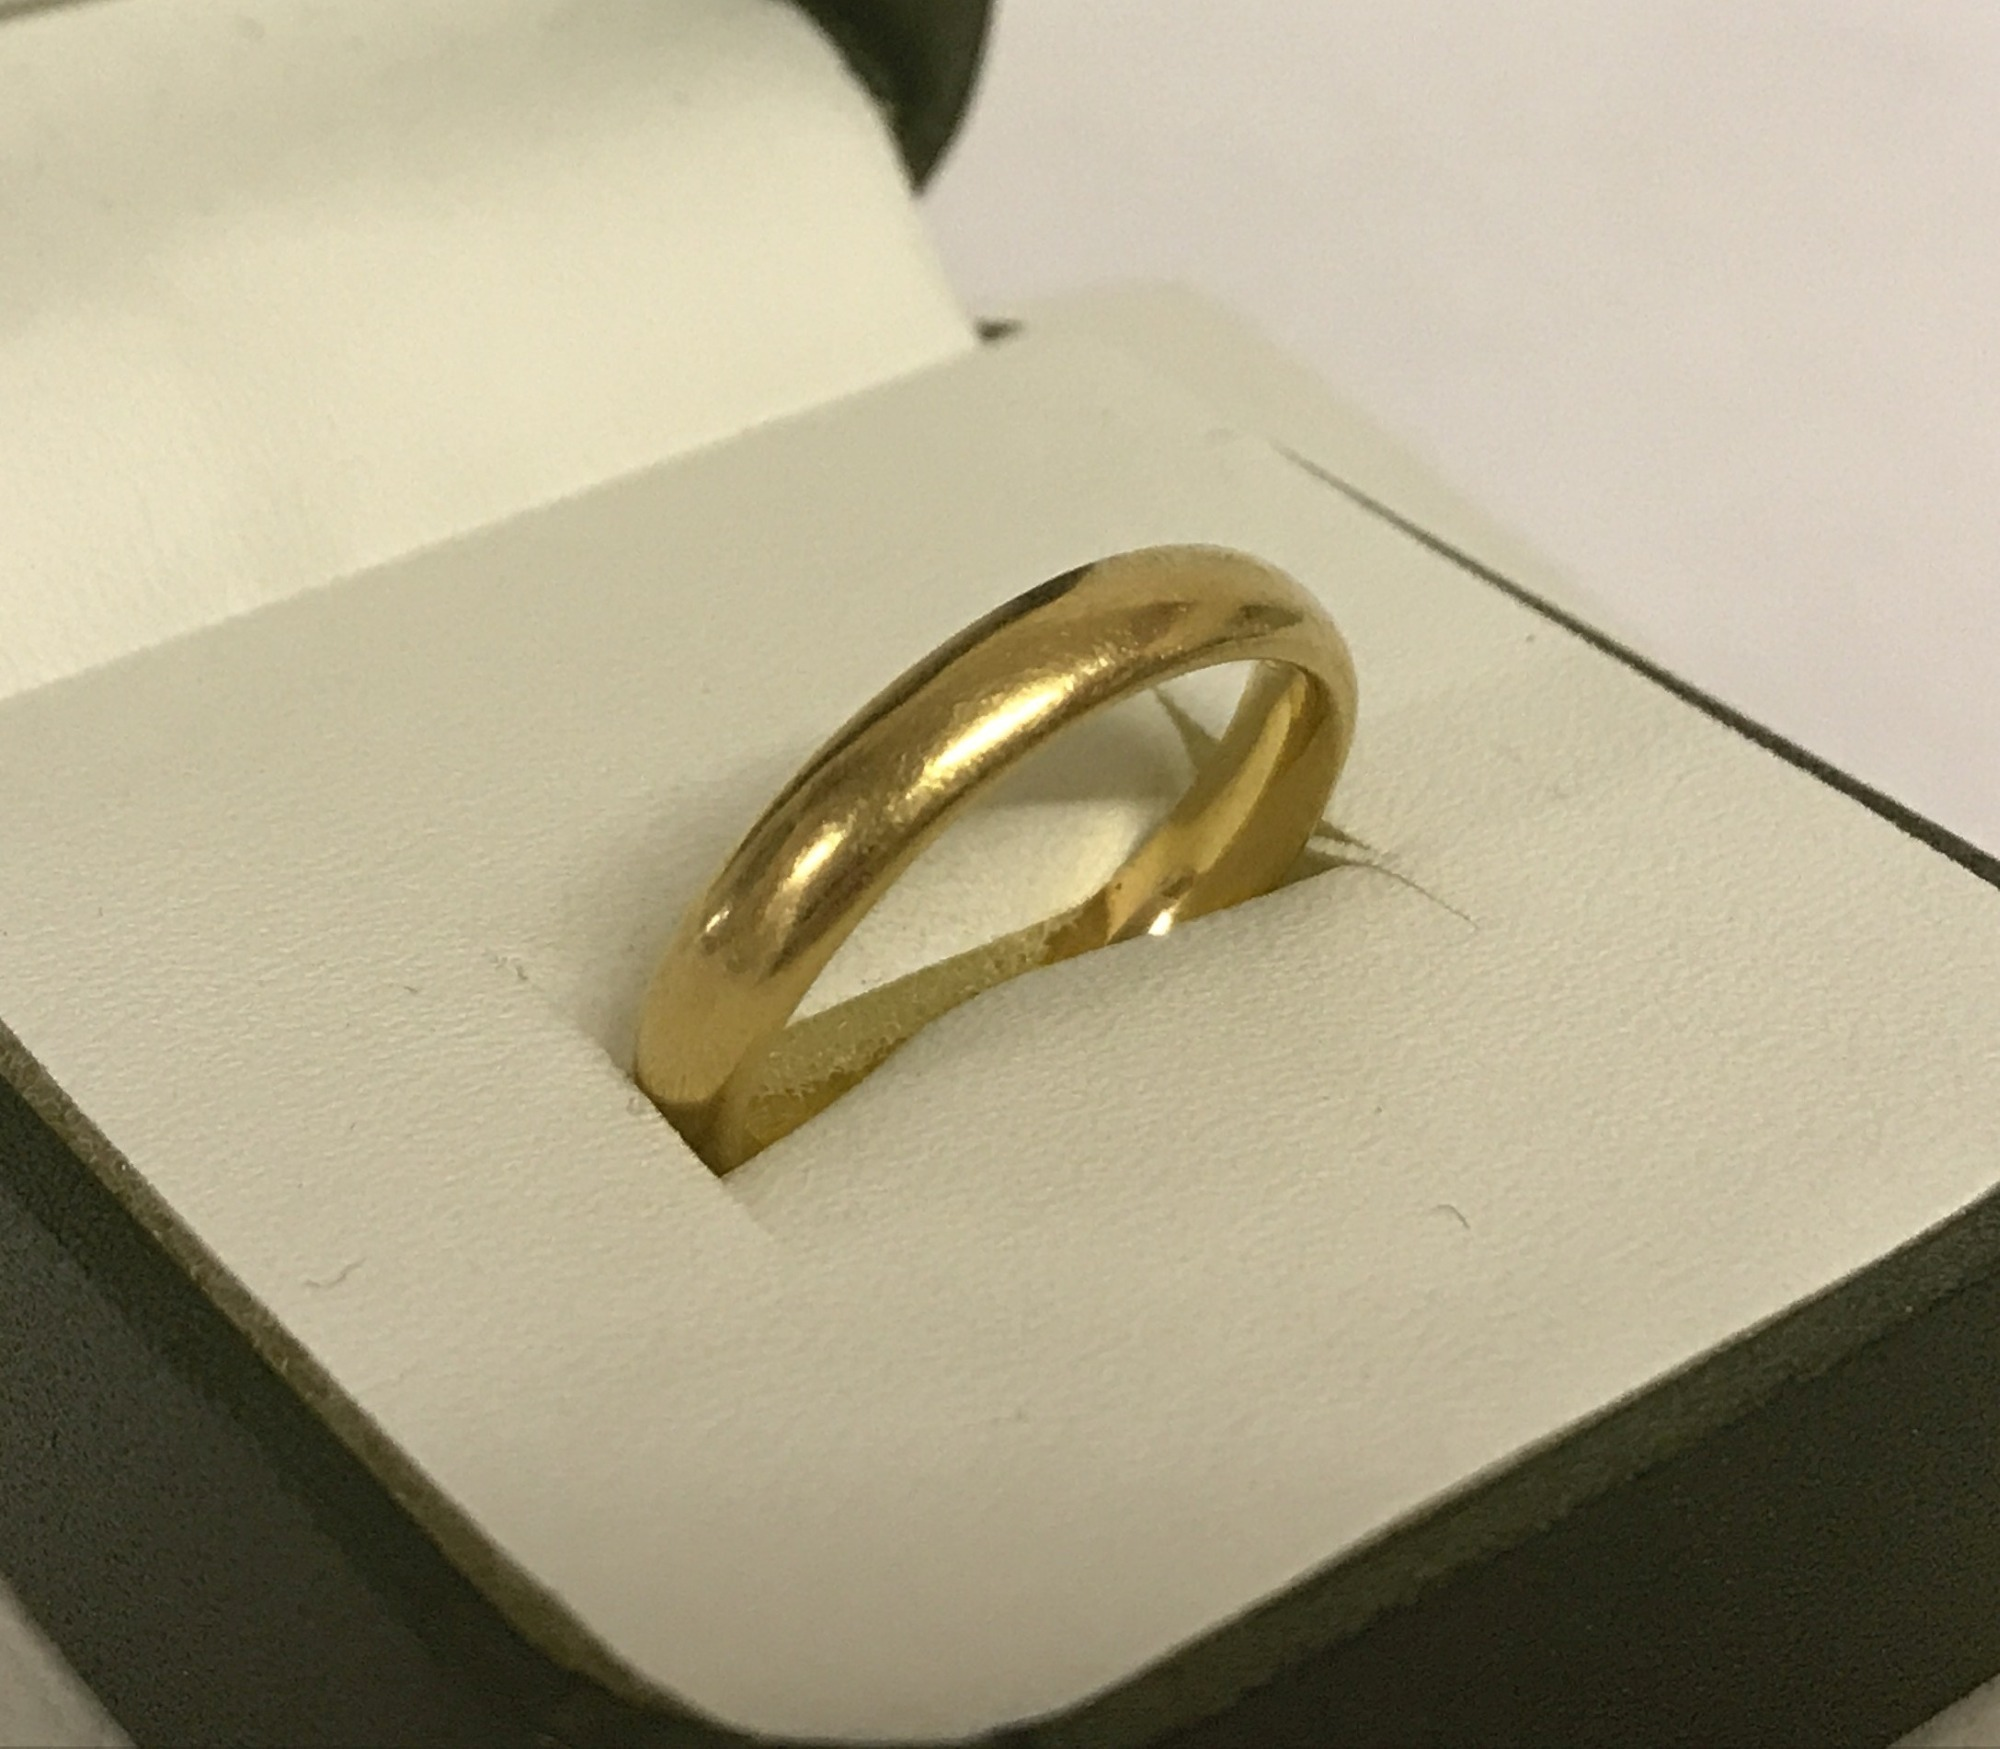 Lot 24 - A vintage 22ct gold wedding band.